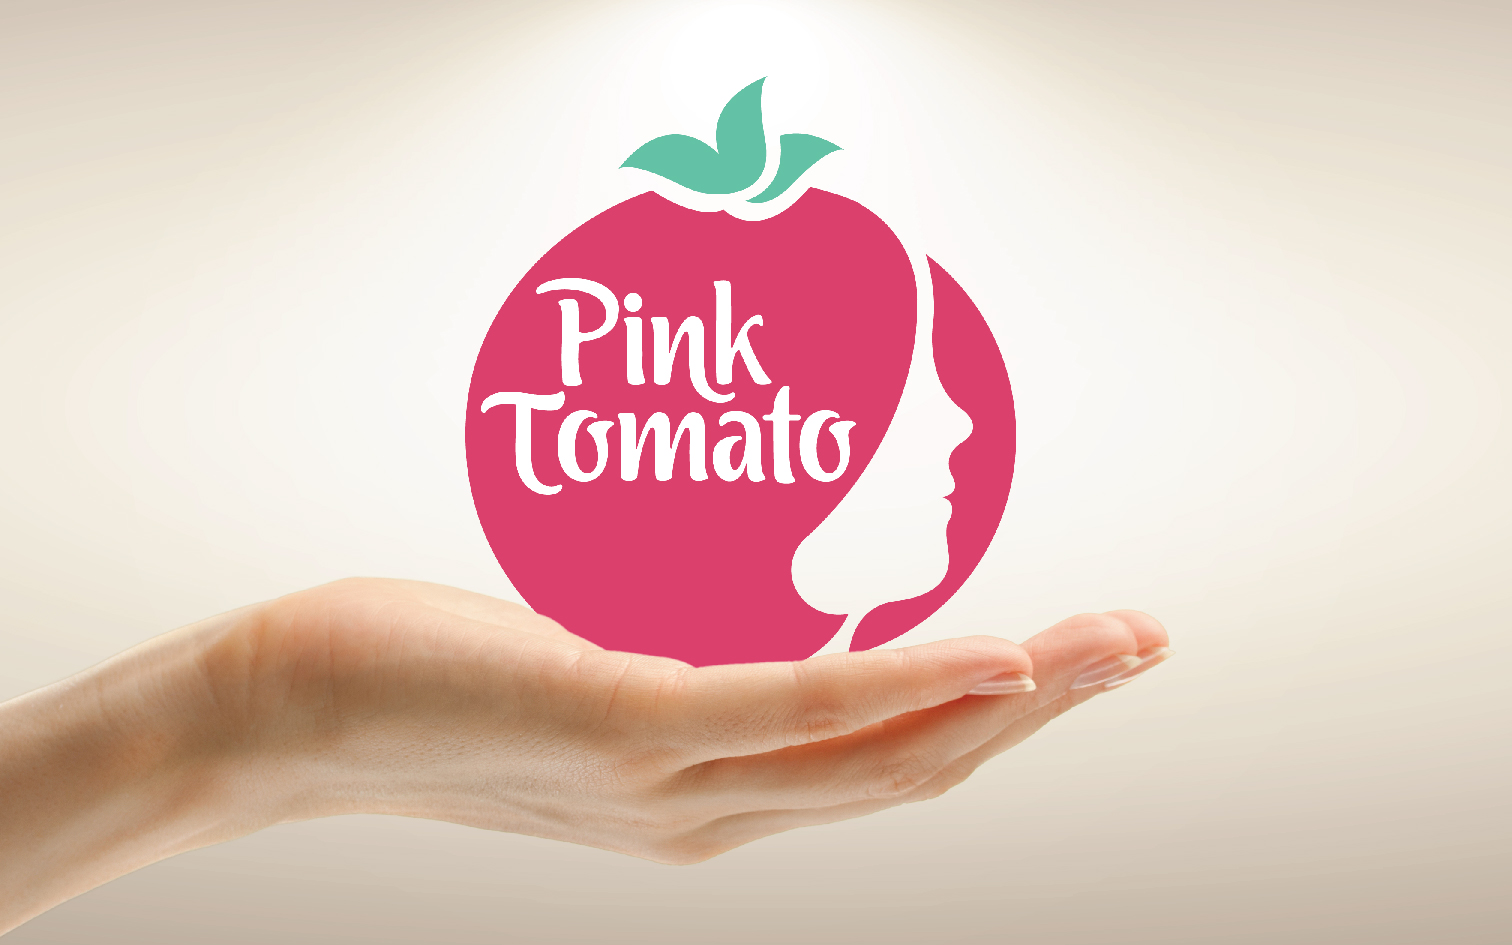 Pink Tomato, Skin care, Natural cosmetics, Natural beauty